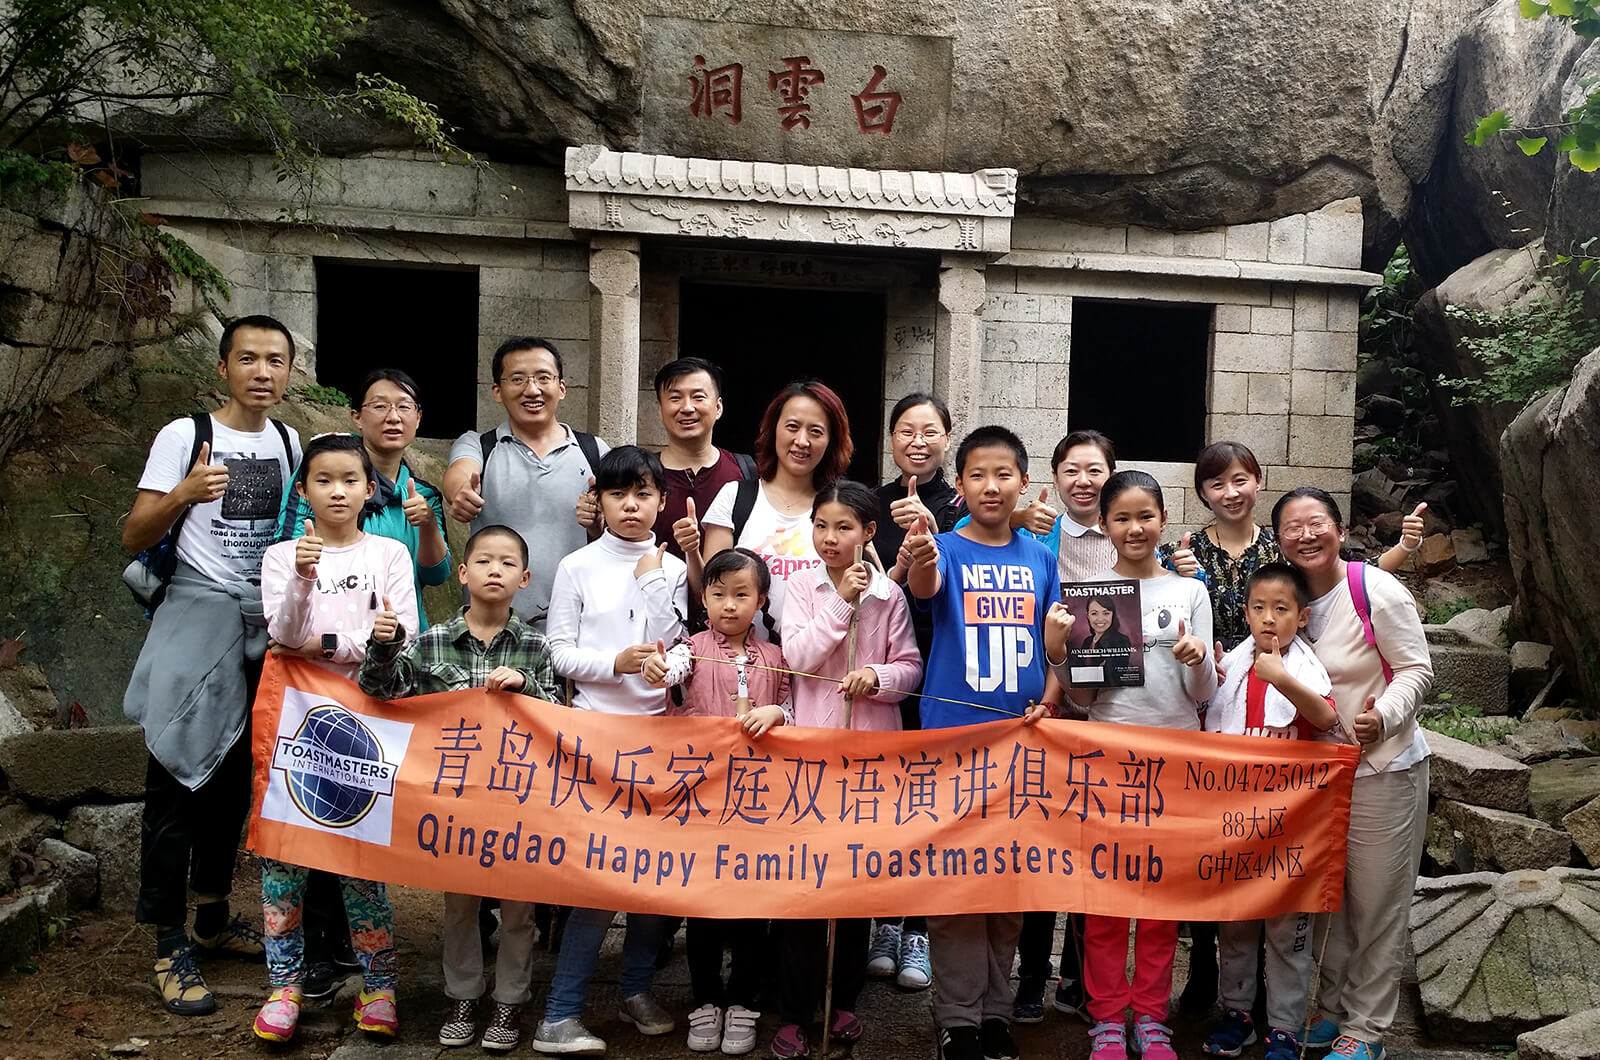 The Qingdao Happy Family Toastmasters club celebrate their 123rd meeting on beautiful Mount Lao near Qingdao, China.